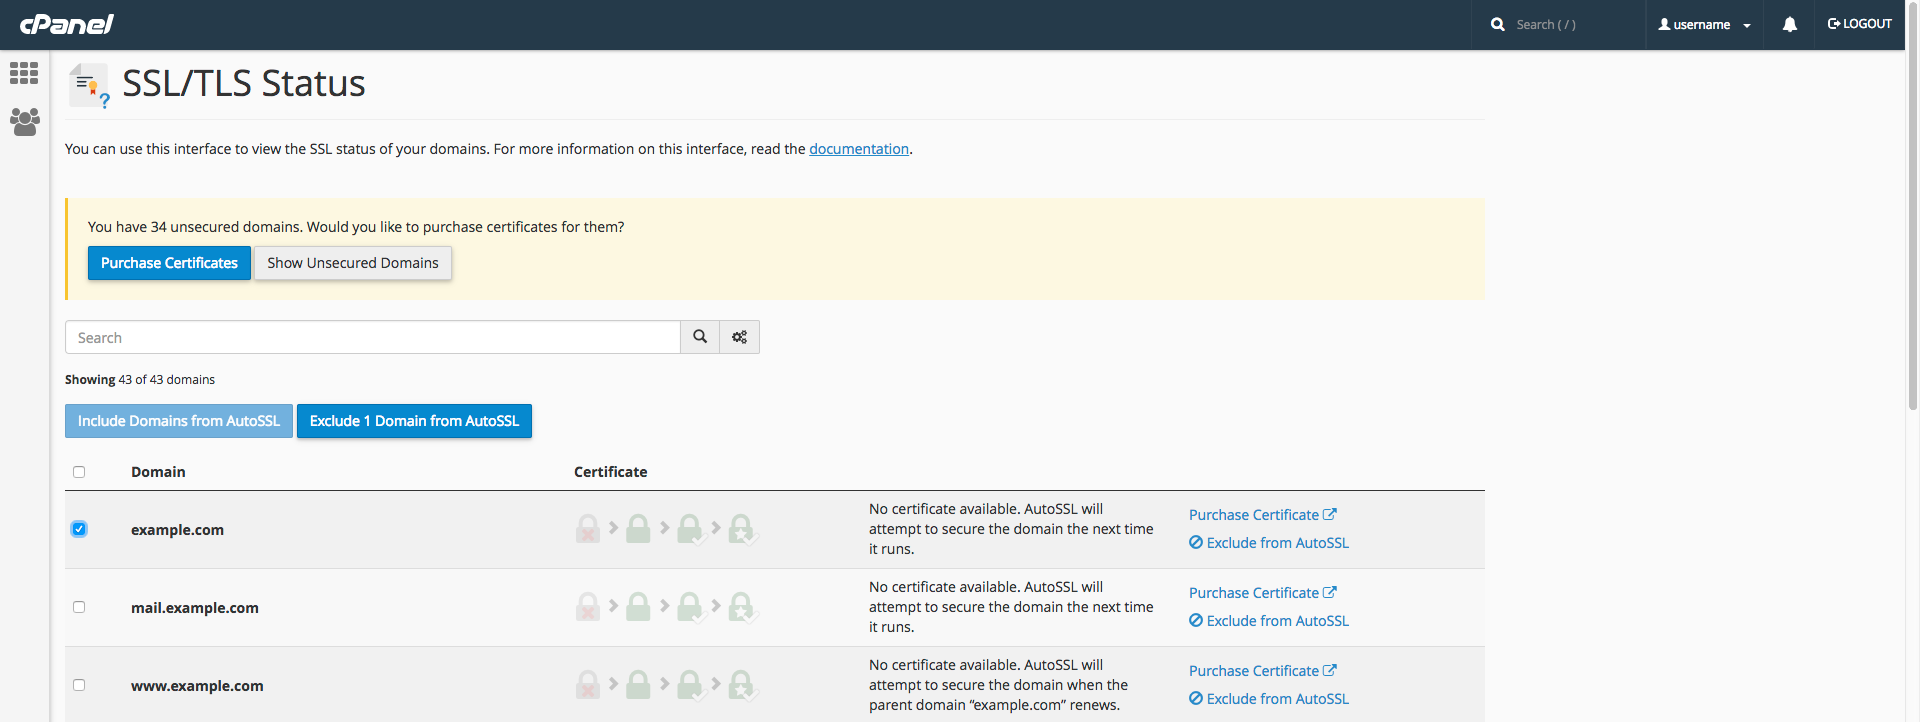 AutoSSL with Even Greater Control | cPanel Blog